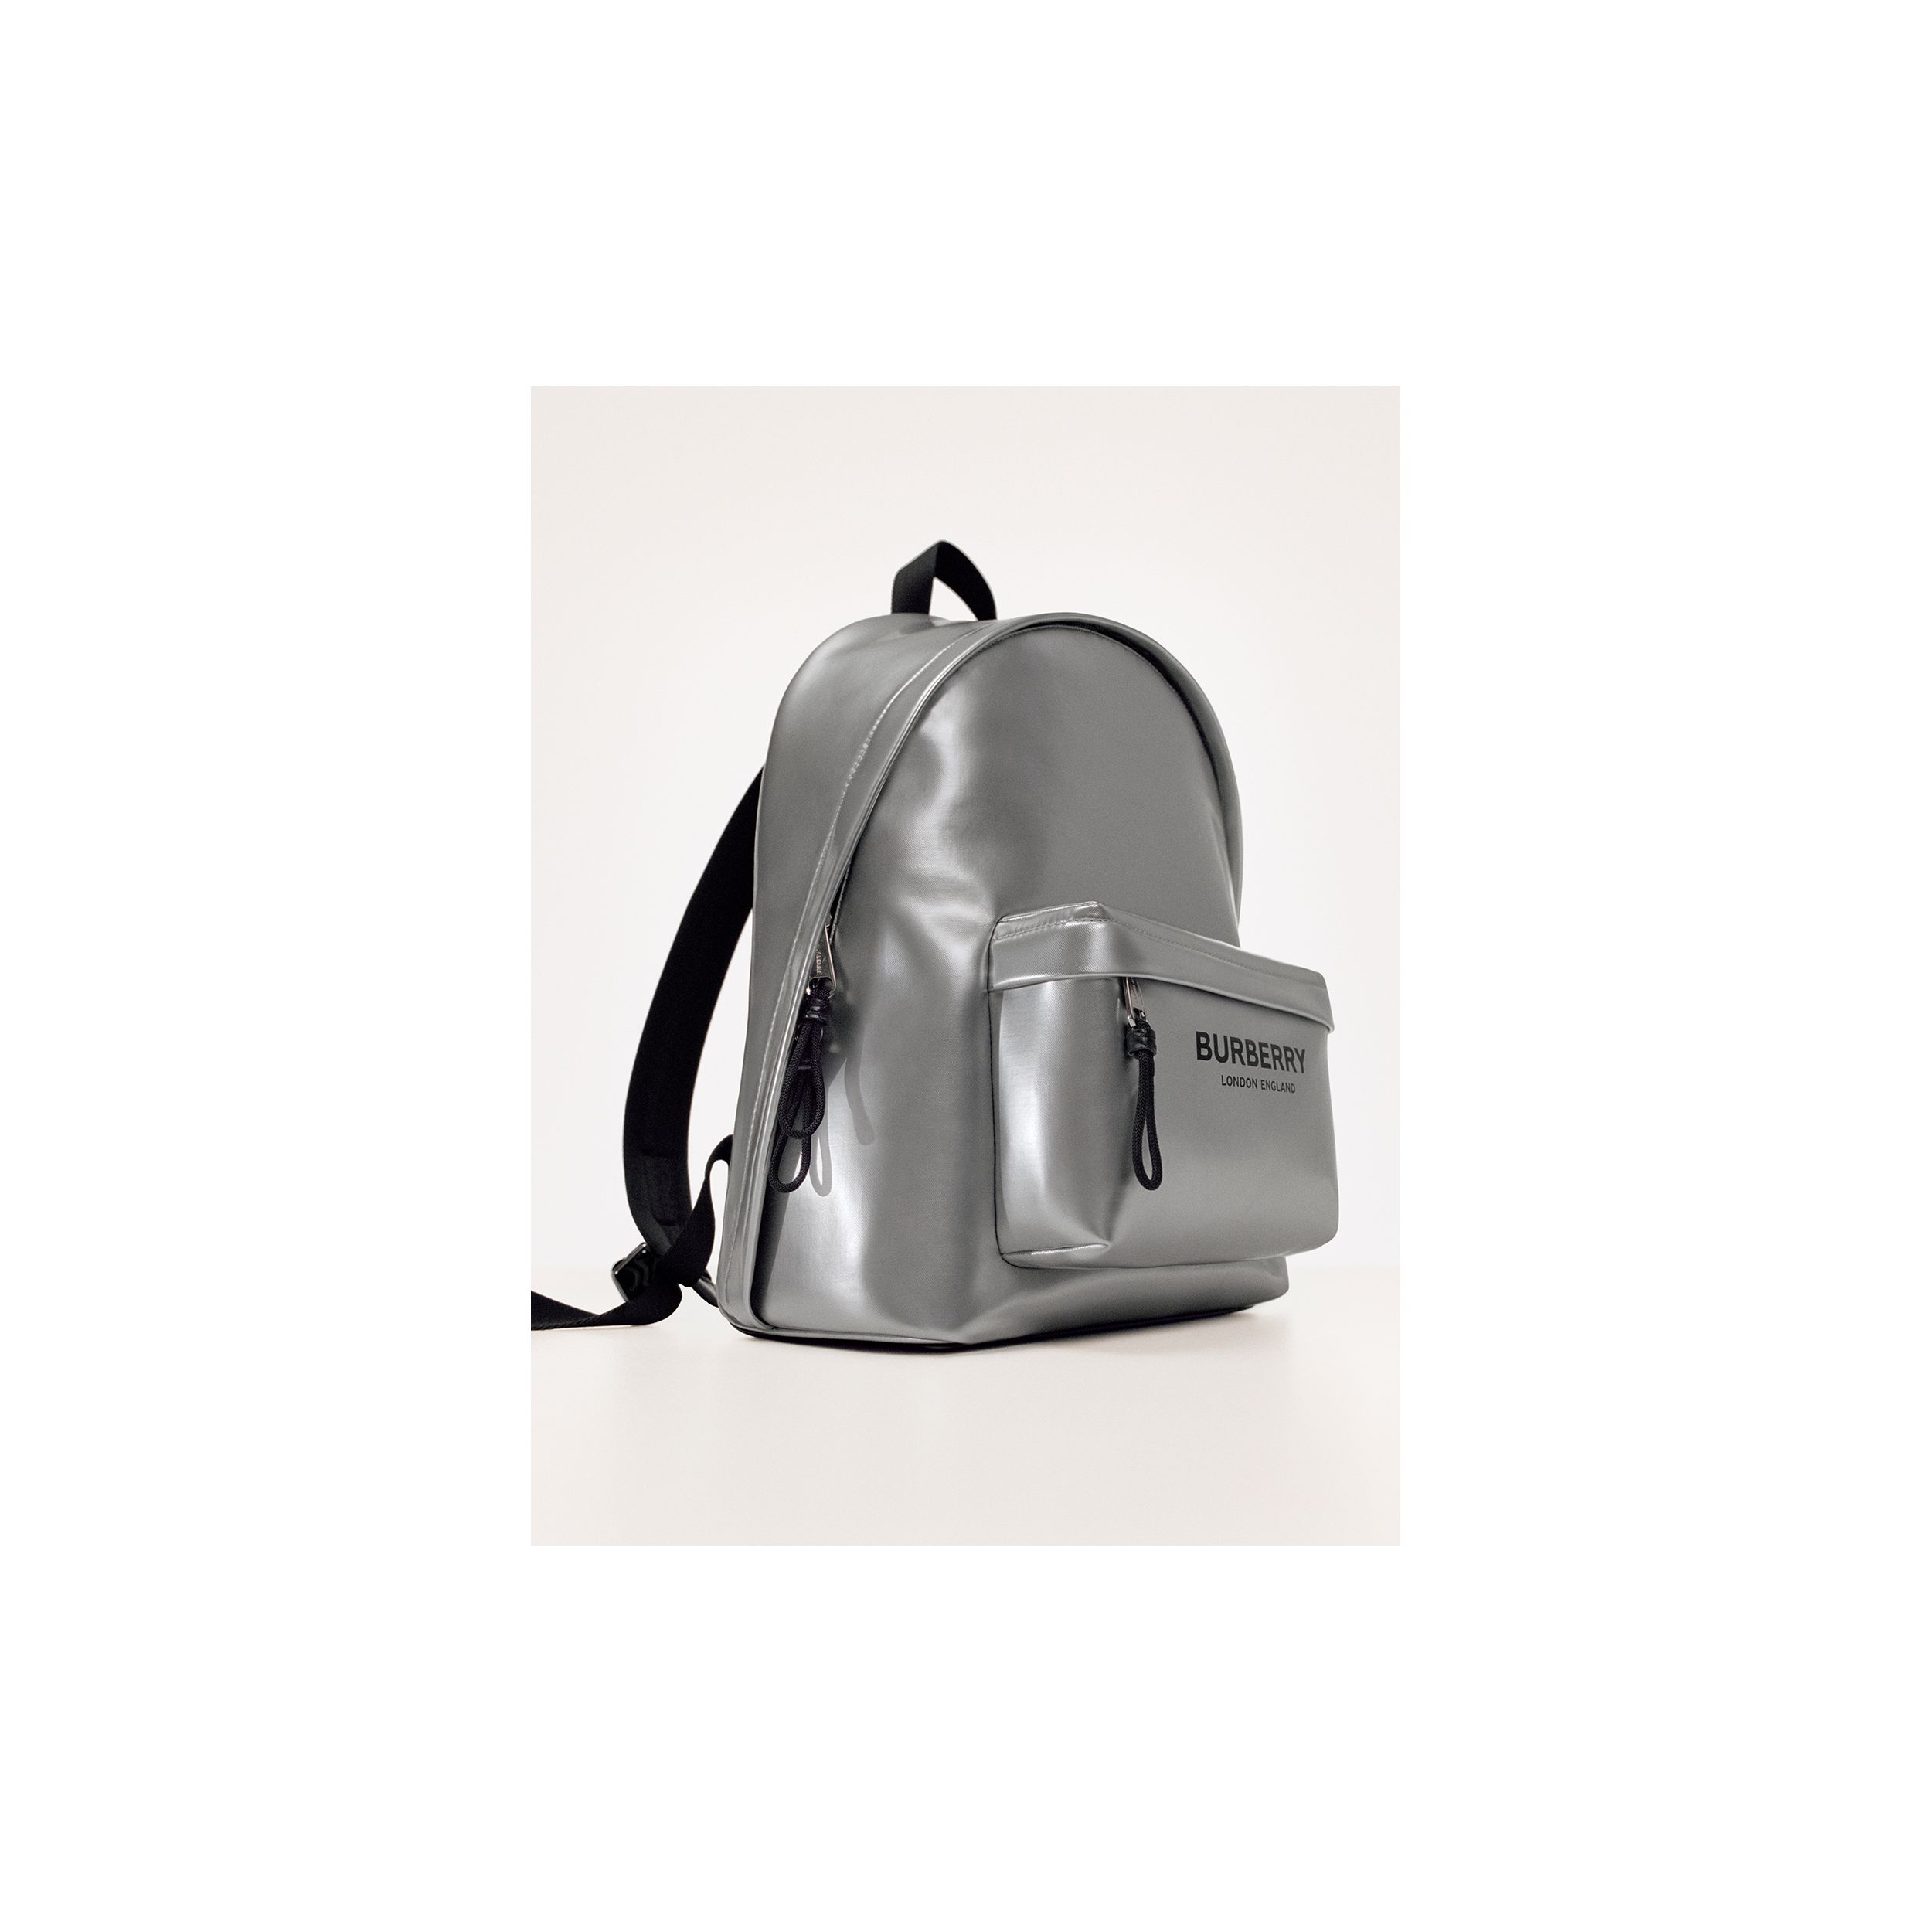 Metallic Coated Canvas Backpack in Silver | Burberry United Kingdom - 2